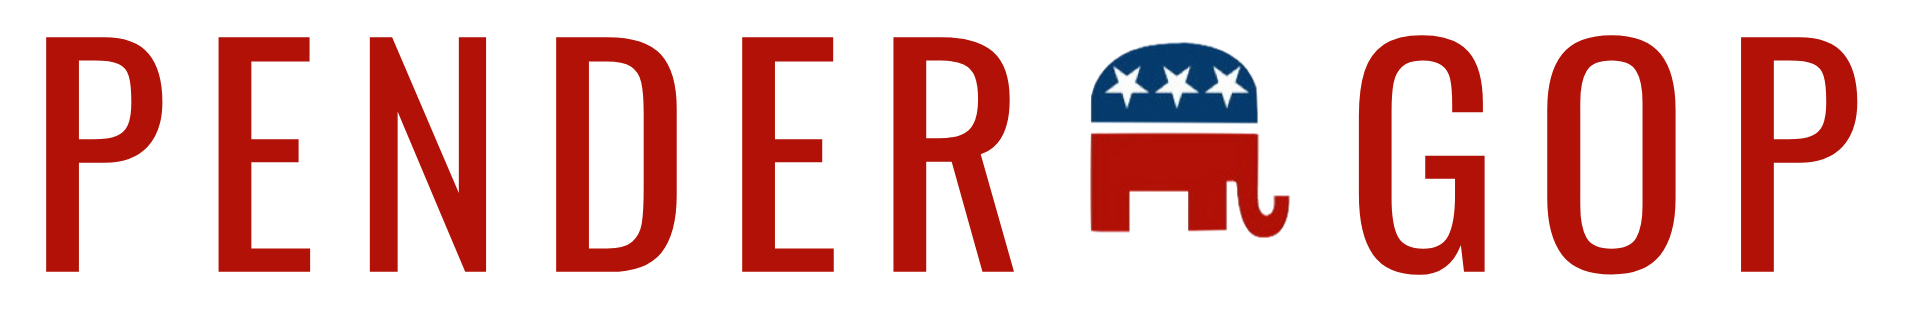 Pender County Republican Party